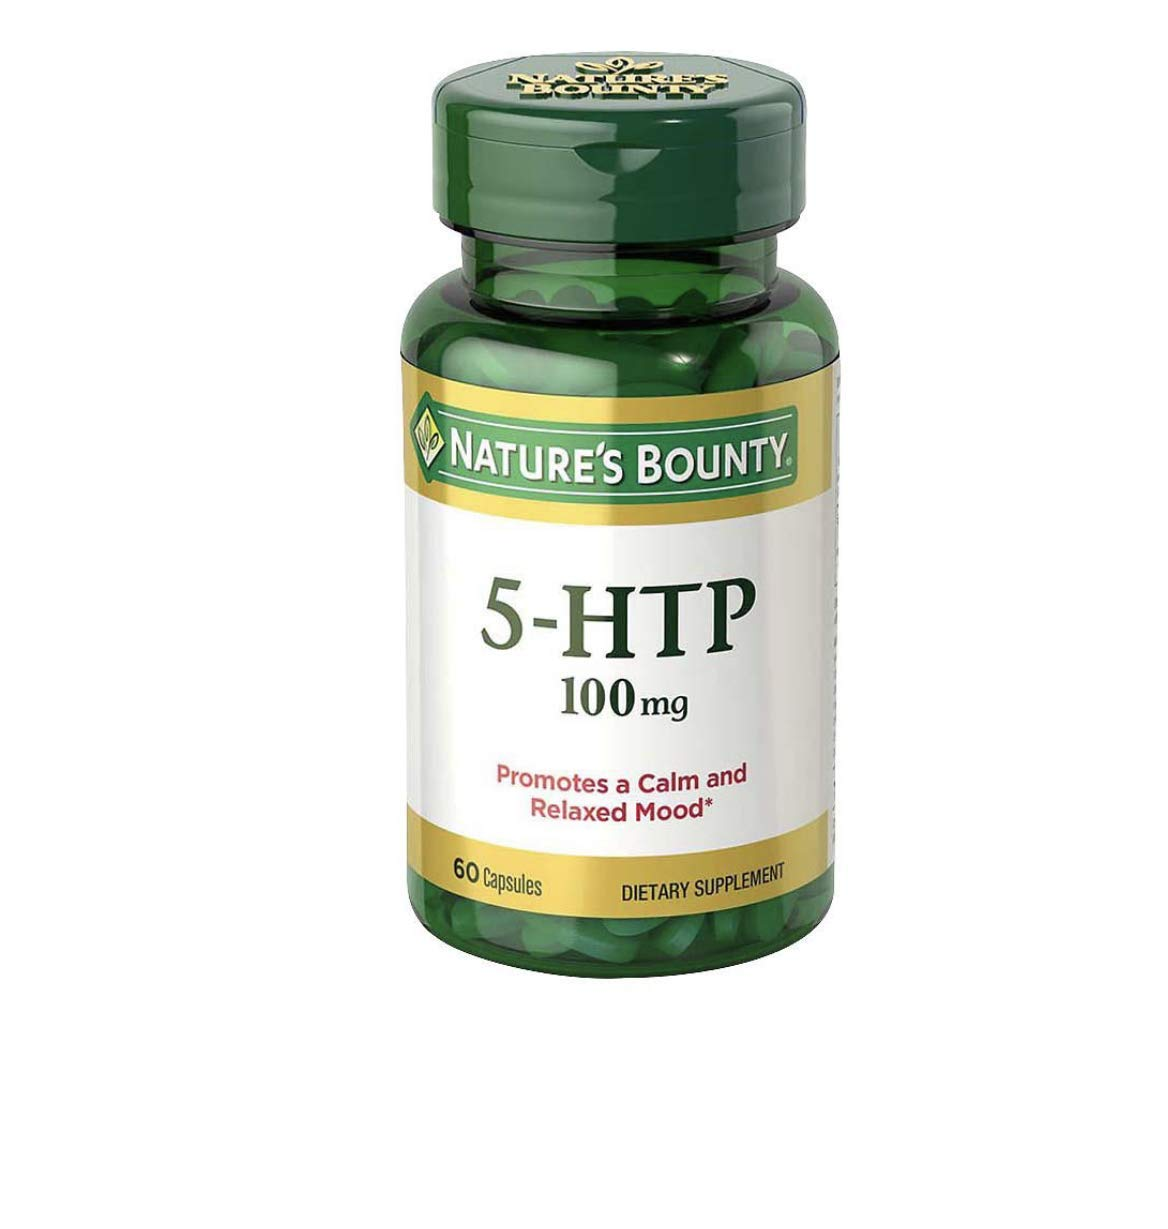 Nature's Bounty, Double Strength 5-HTP 100 mg Capsules, 60 ct Thank you to all the patrons We hope that he has gained the trust from you again the next time the service top 5 natural sleep supplements - 616UTbMG QL - Top 5 Natural sleep supplements – reviews and buying guide